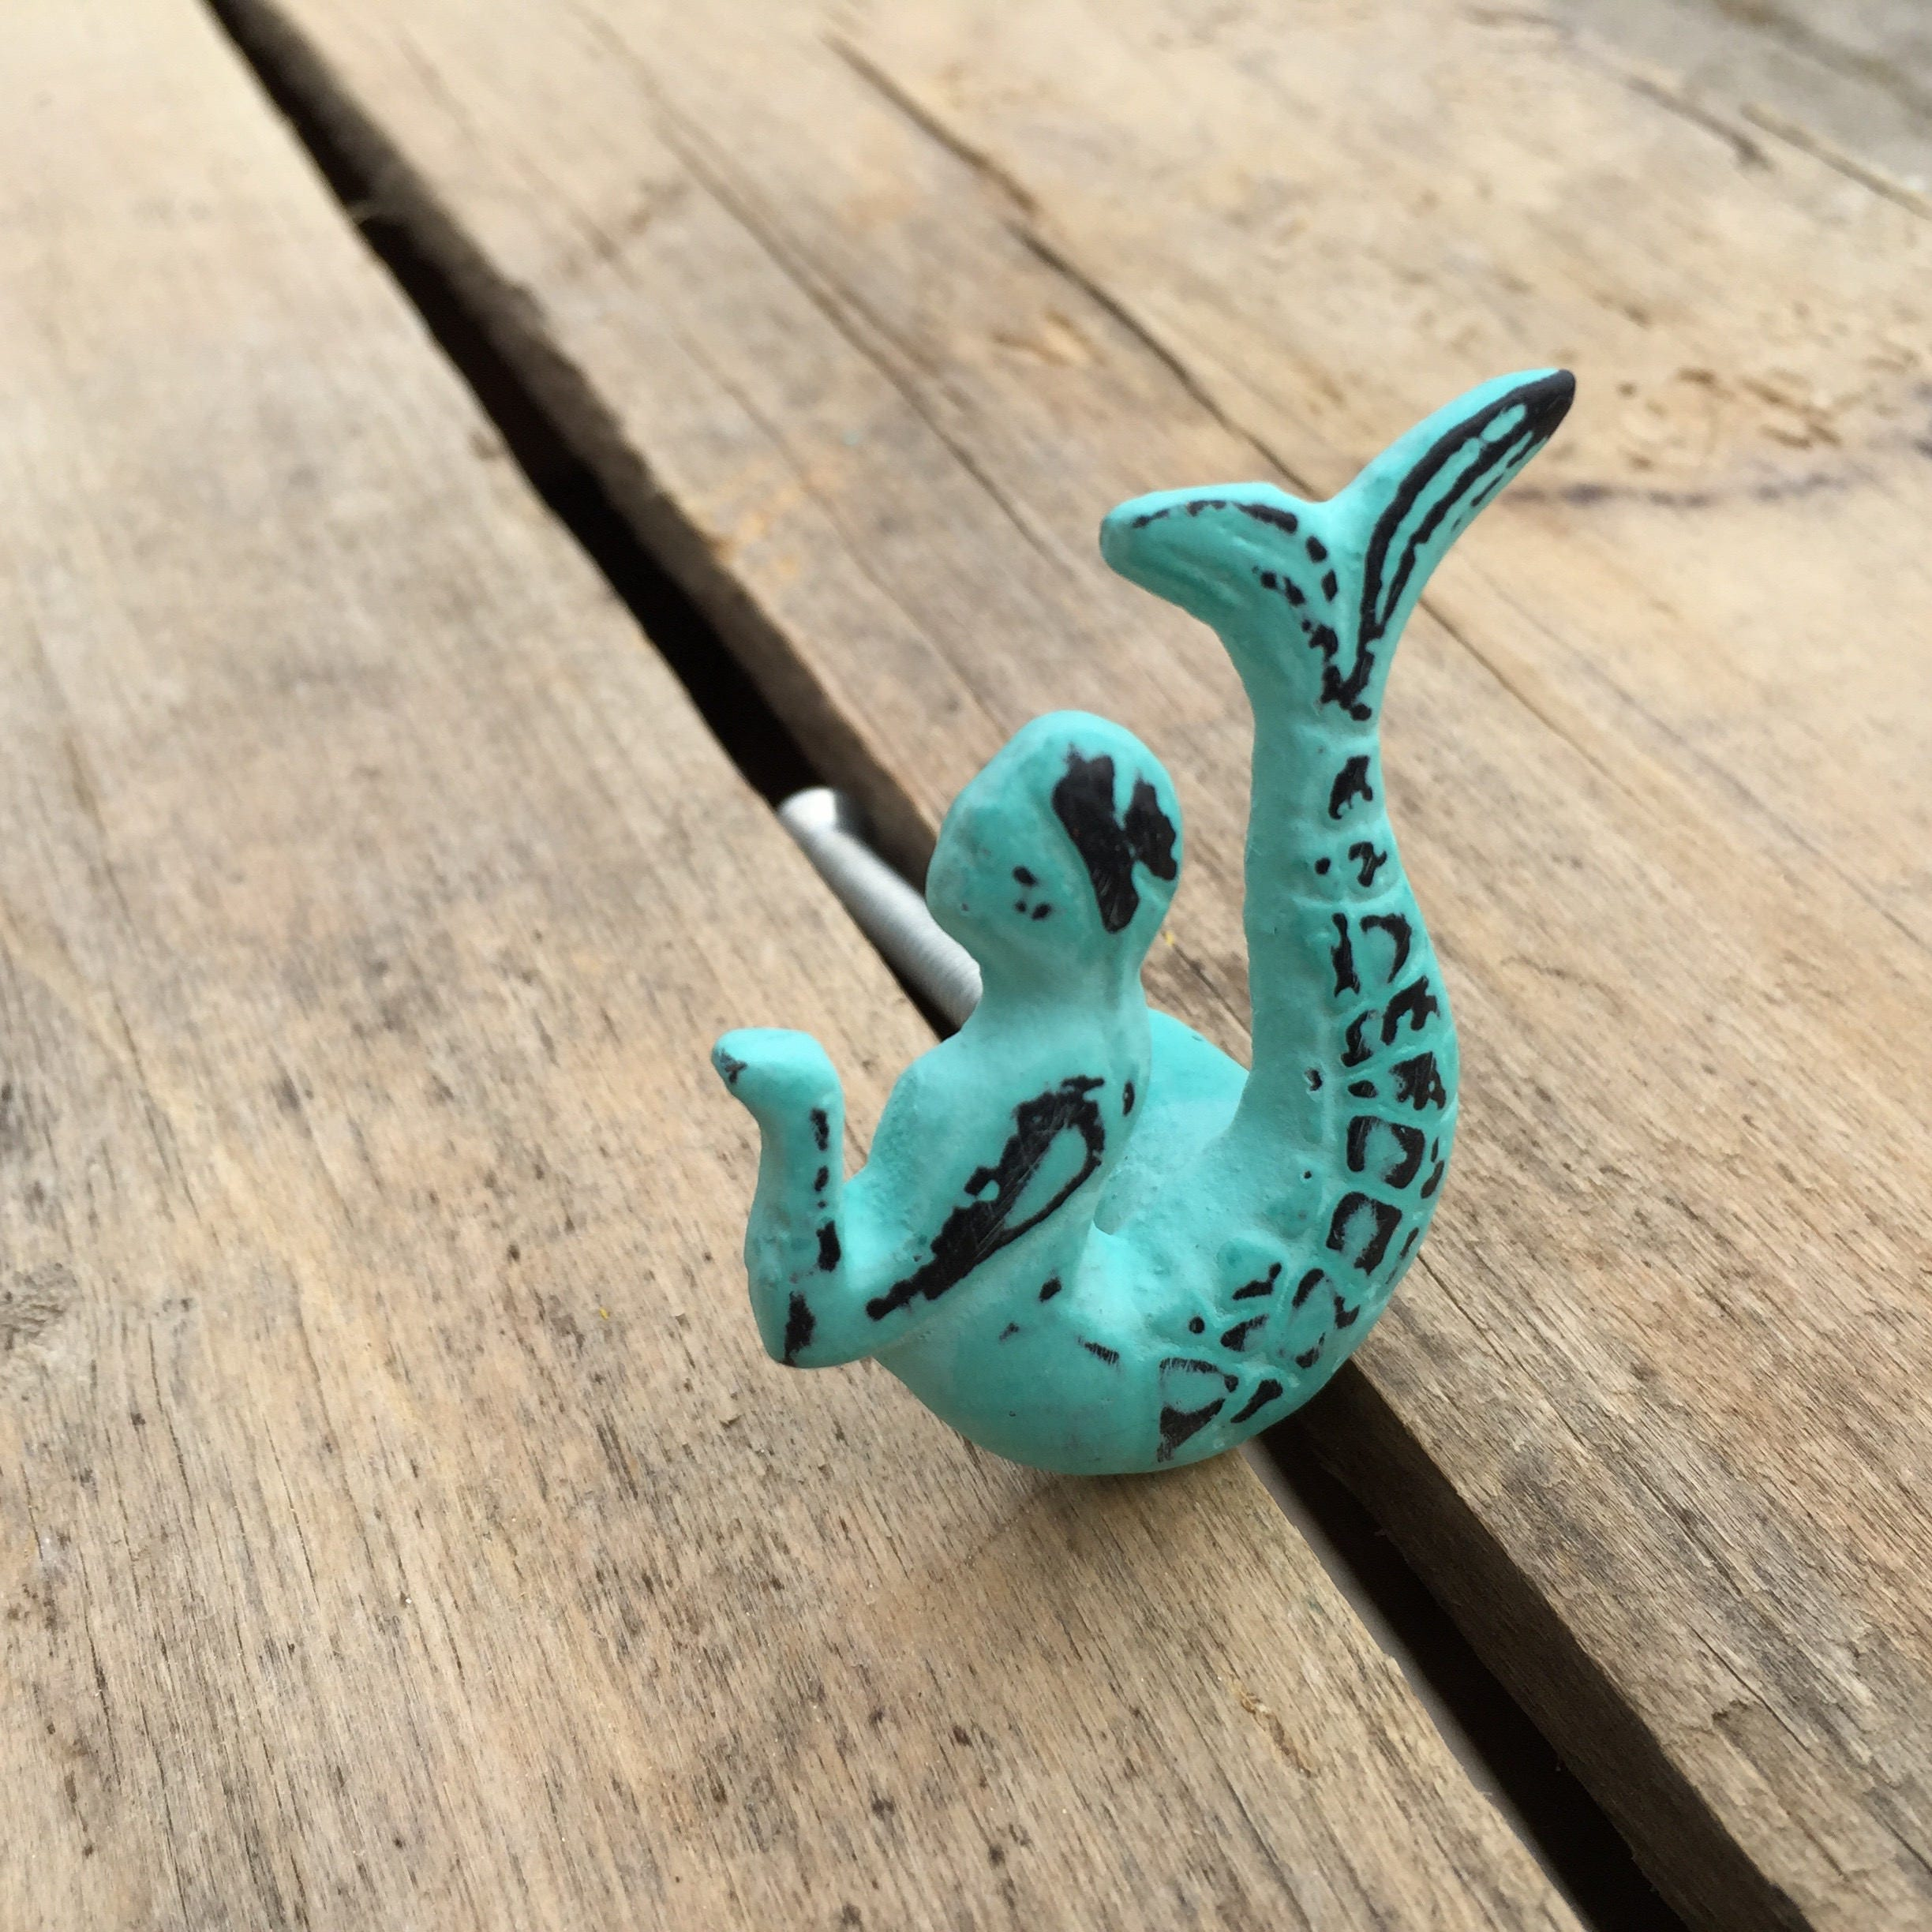 pull pulls replacement by mermaid for knob item pin cabinets knobs furniture ocean white beach theme drawer drawers blue ceramic inspired nautical